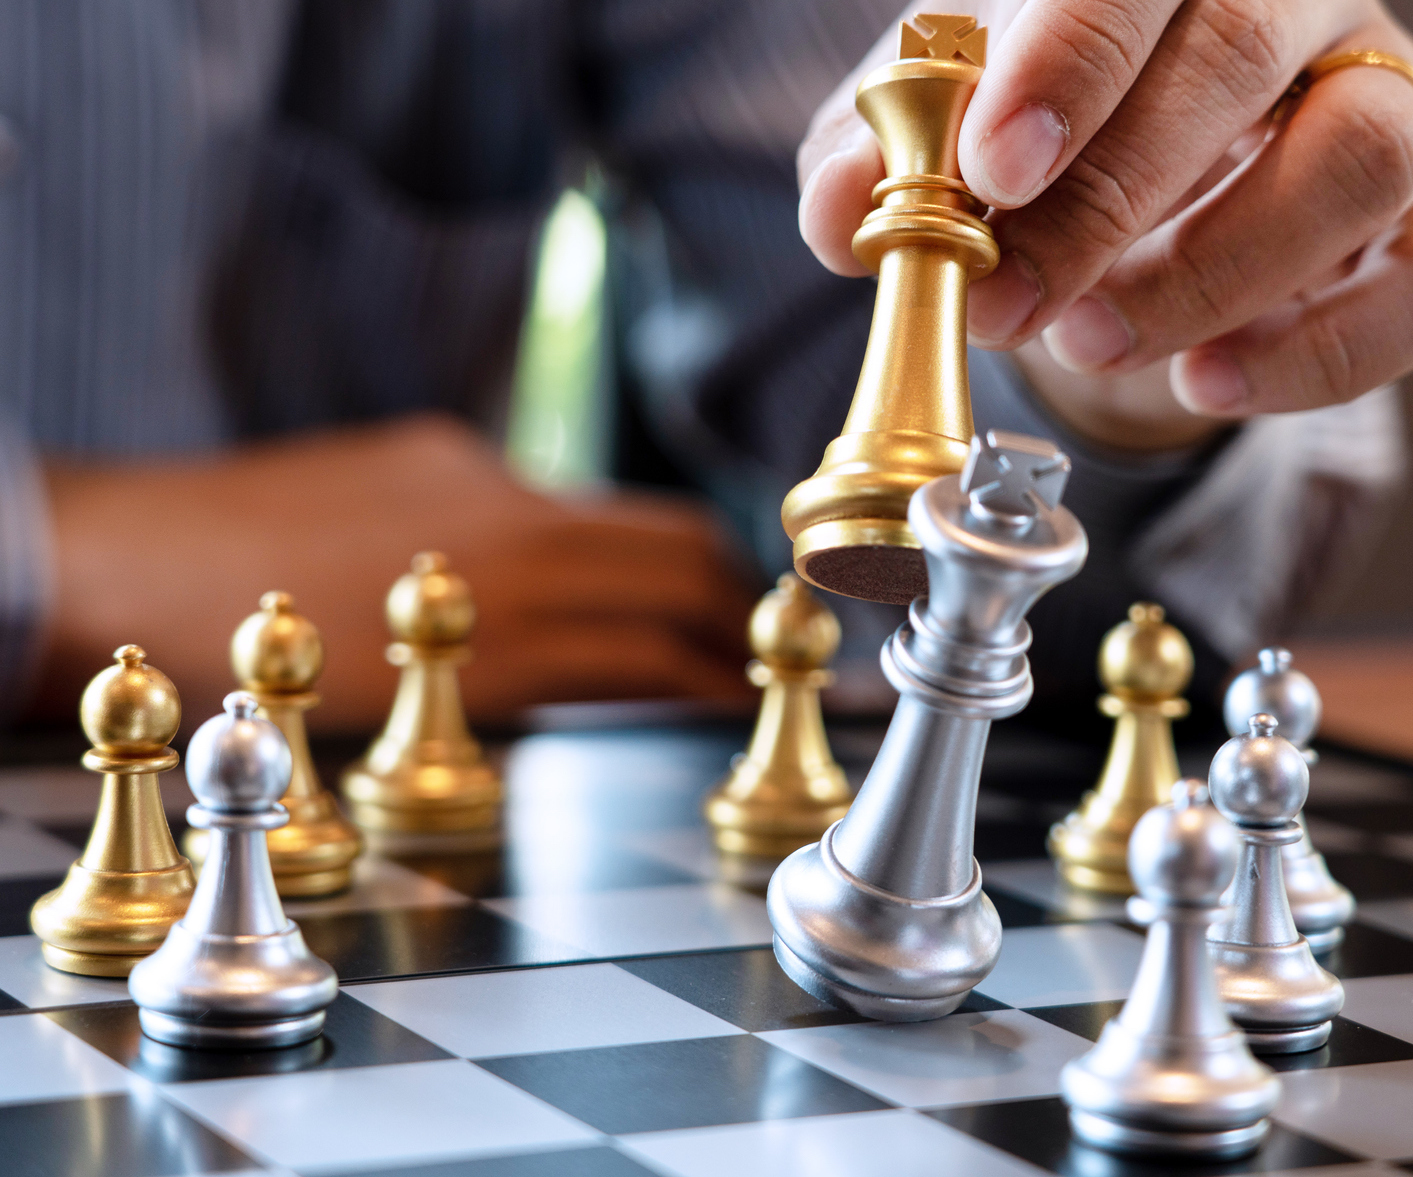 business-man-king-chess-checkmate-chess-board-game-strategy